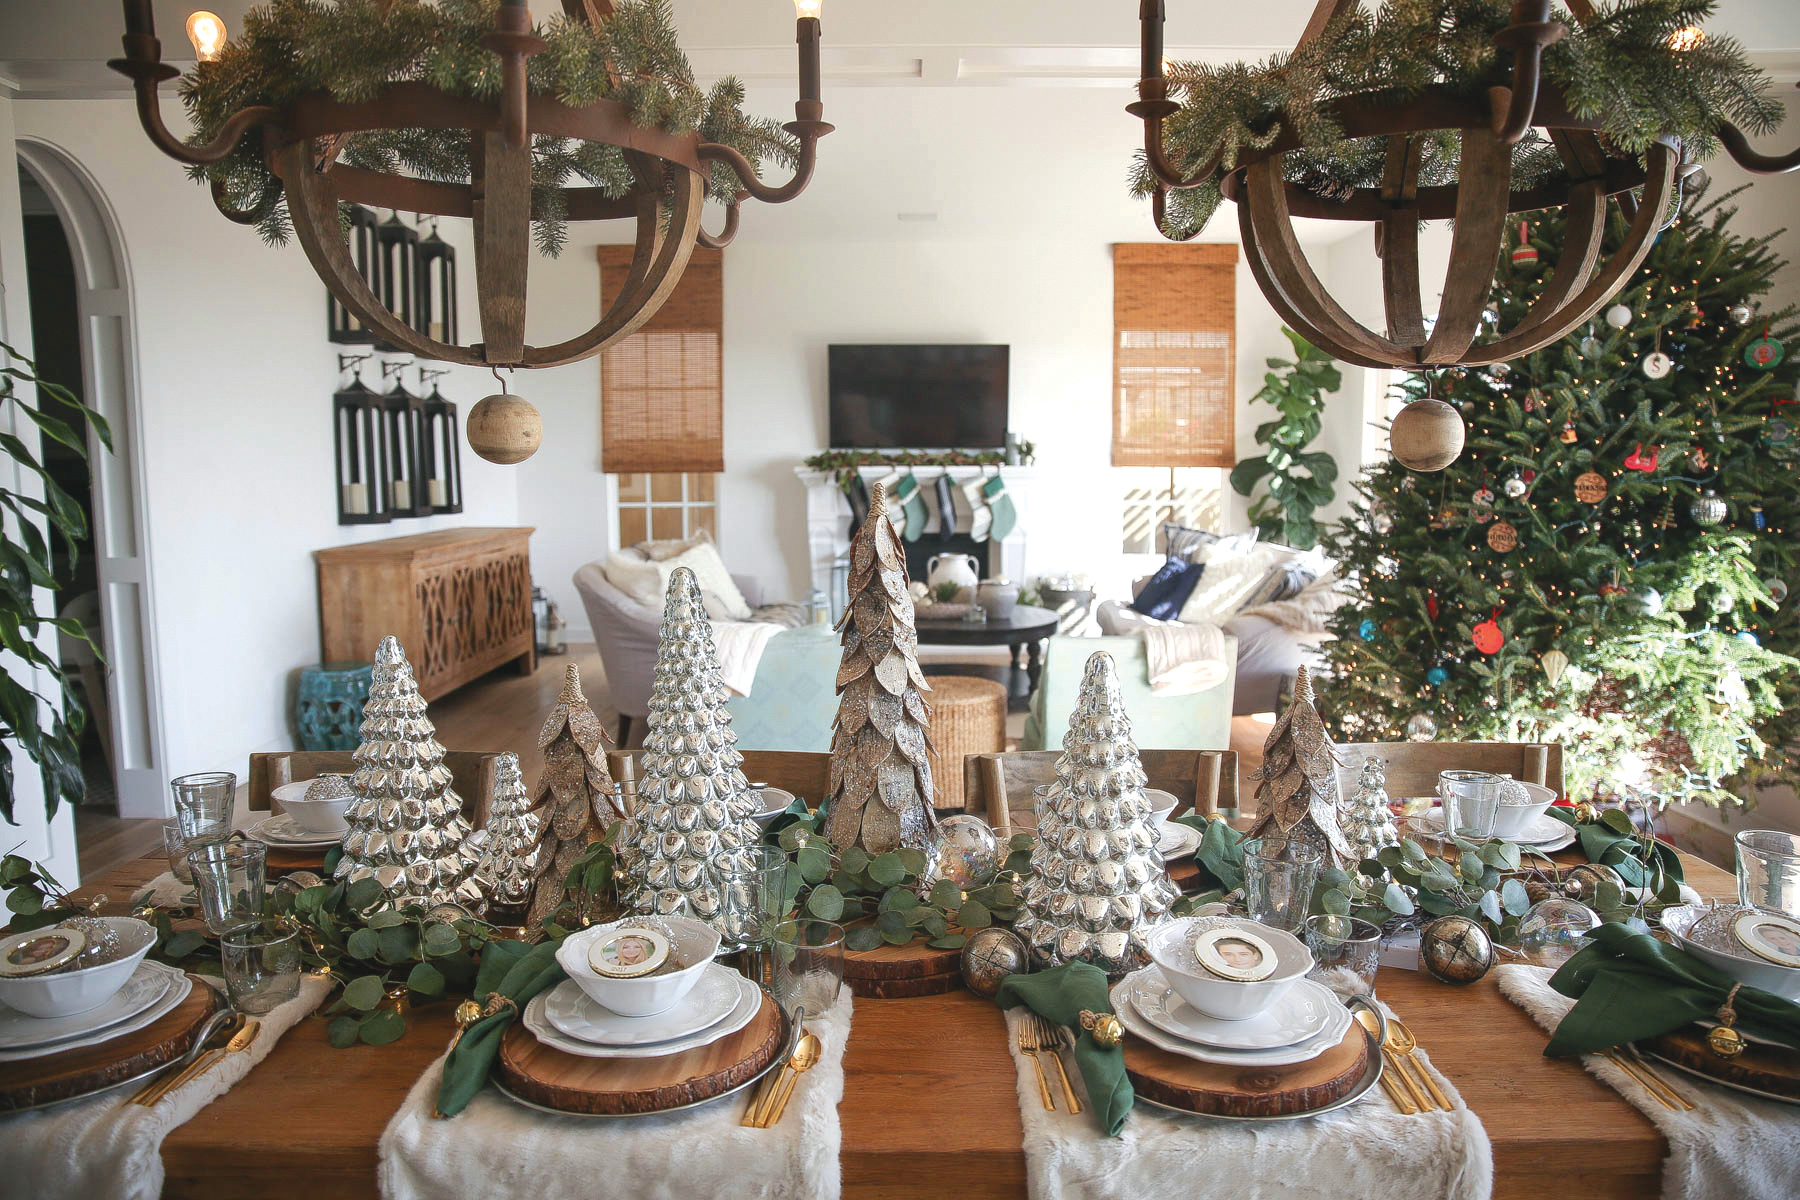 city girl gone mom san diego danielle lucia schaffer dining table decor holiday decorations wooden trees pine wreaths